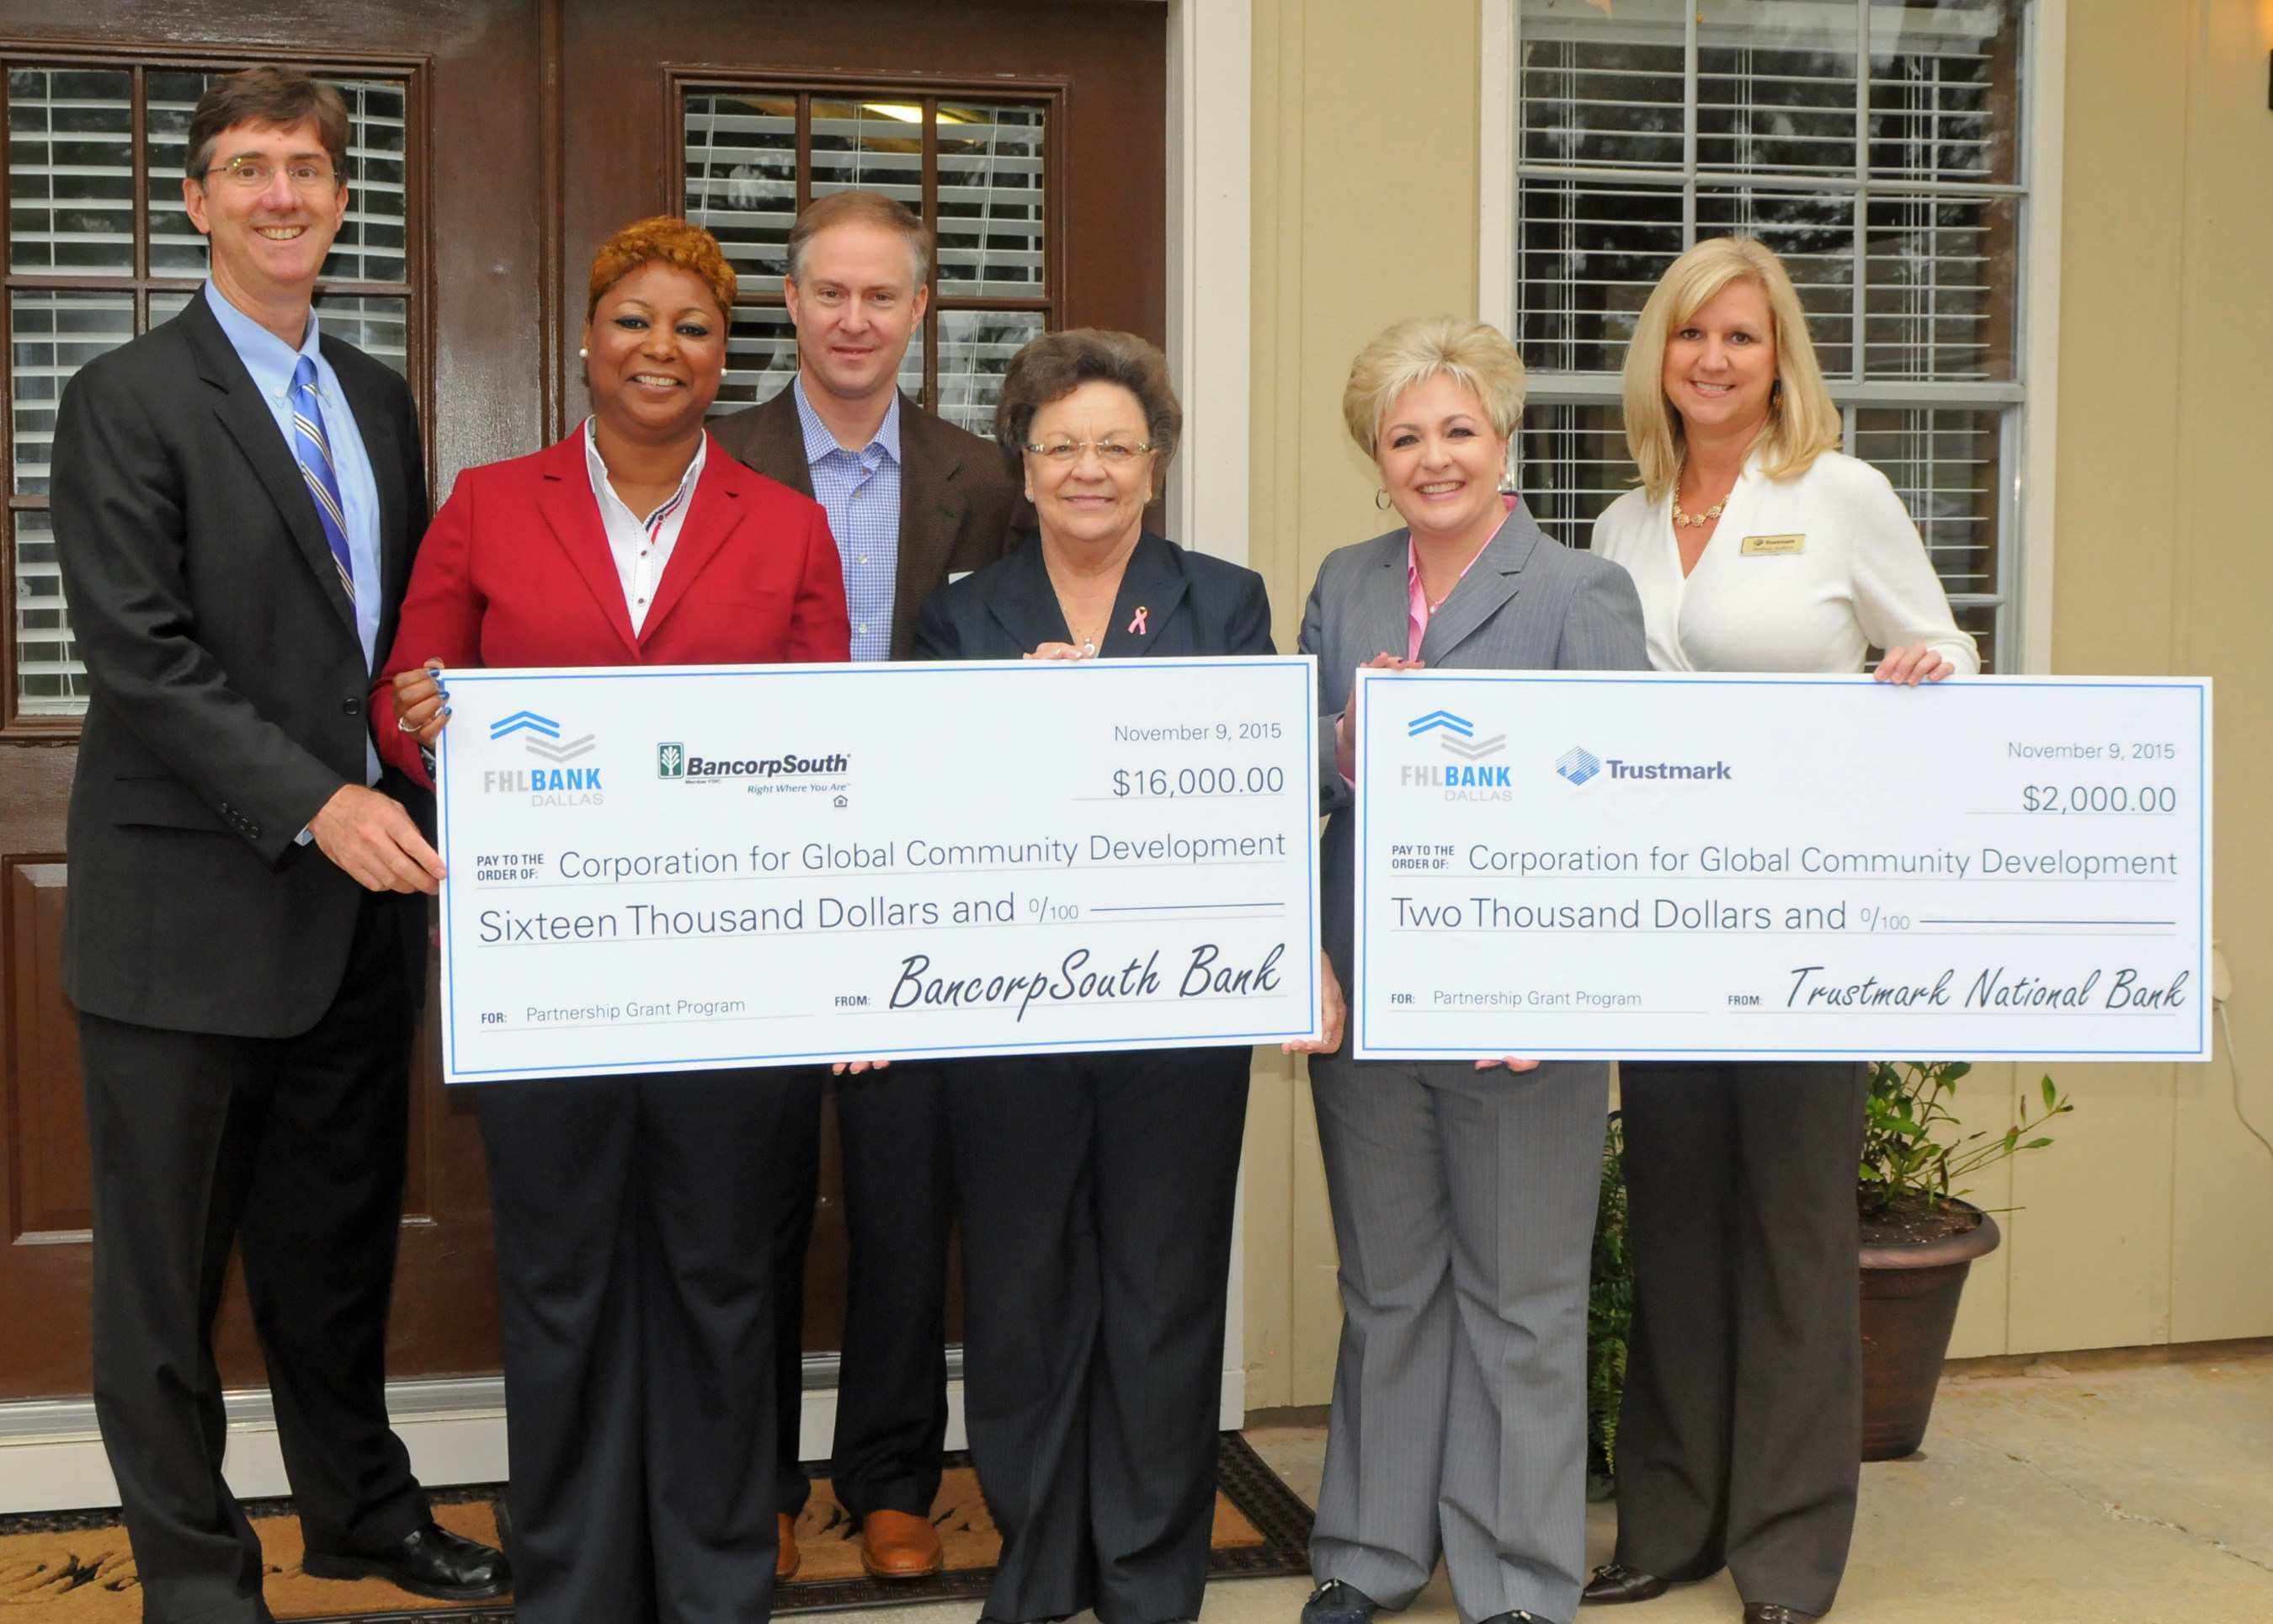 The Corporation for Global Community Development (CGCD) today received an $18,000 Partnership Grant Program award from BancorpSouth Bank, Trustmark National Bank, and the Federal Home Loan Bank of Dallas. The funds will be used for operational and administrative expenses. CGCD also dedicated the Dorothy L. Biard Hearts of Compassion Independent Living for Seniors Center.